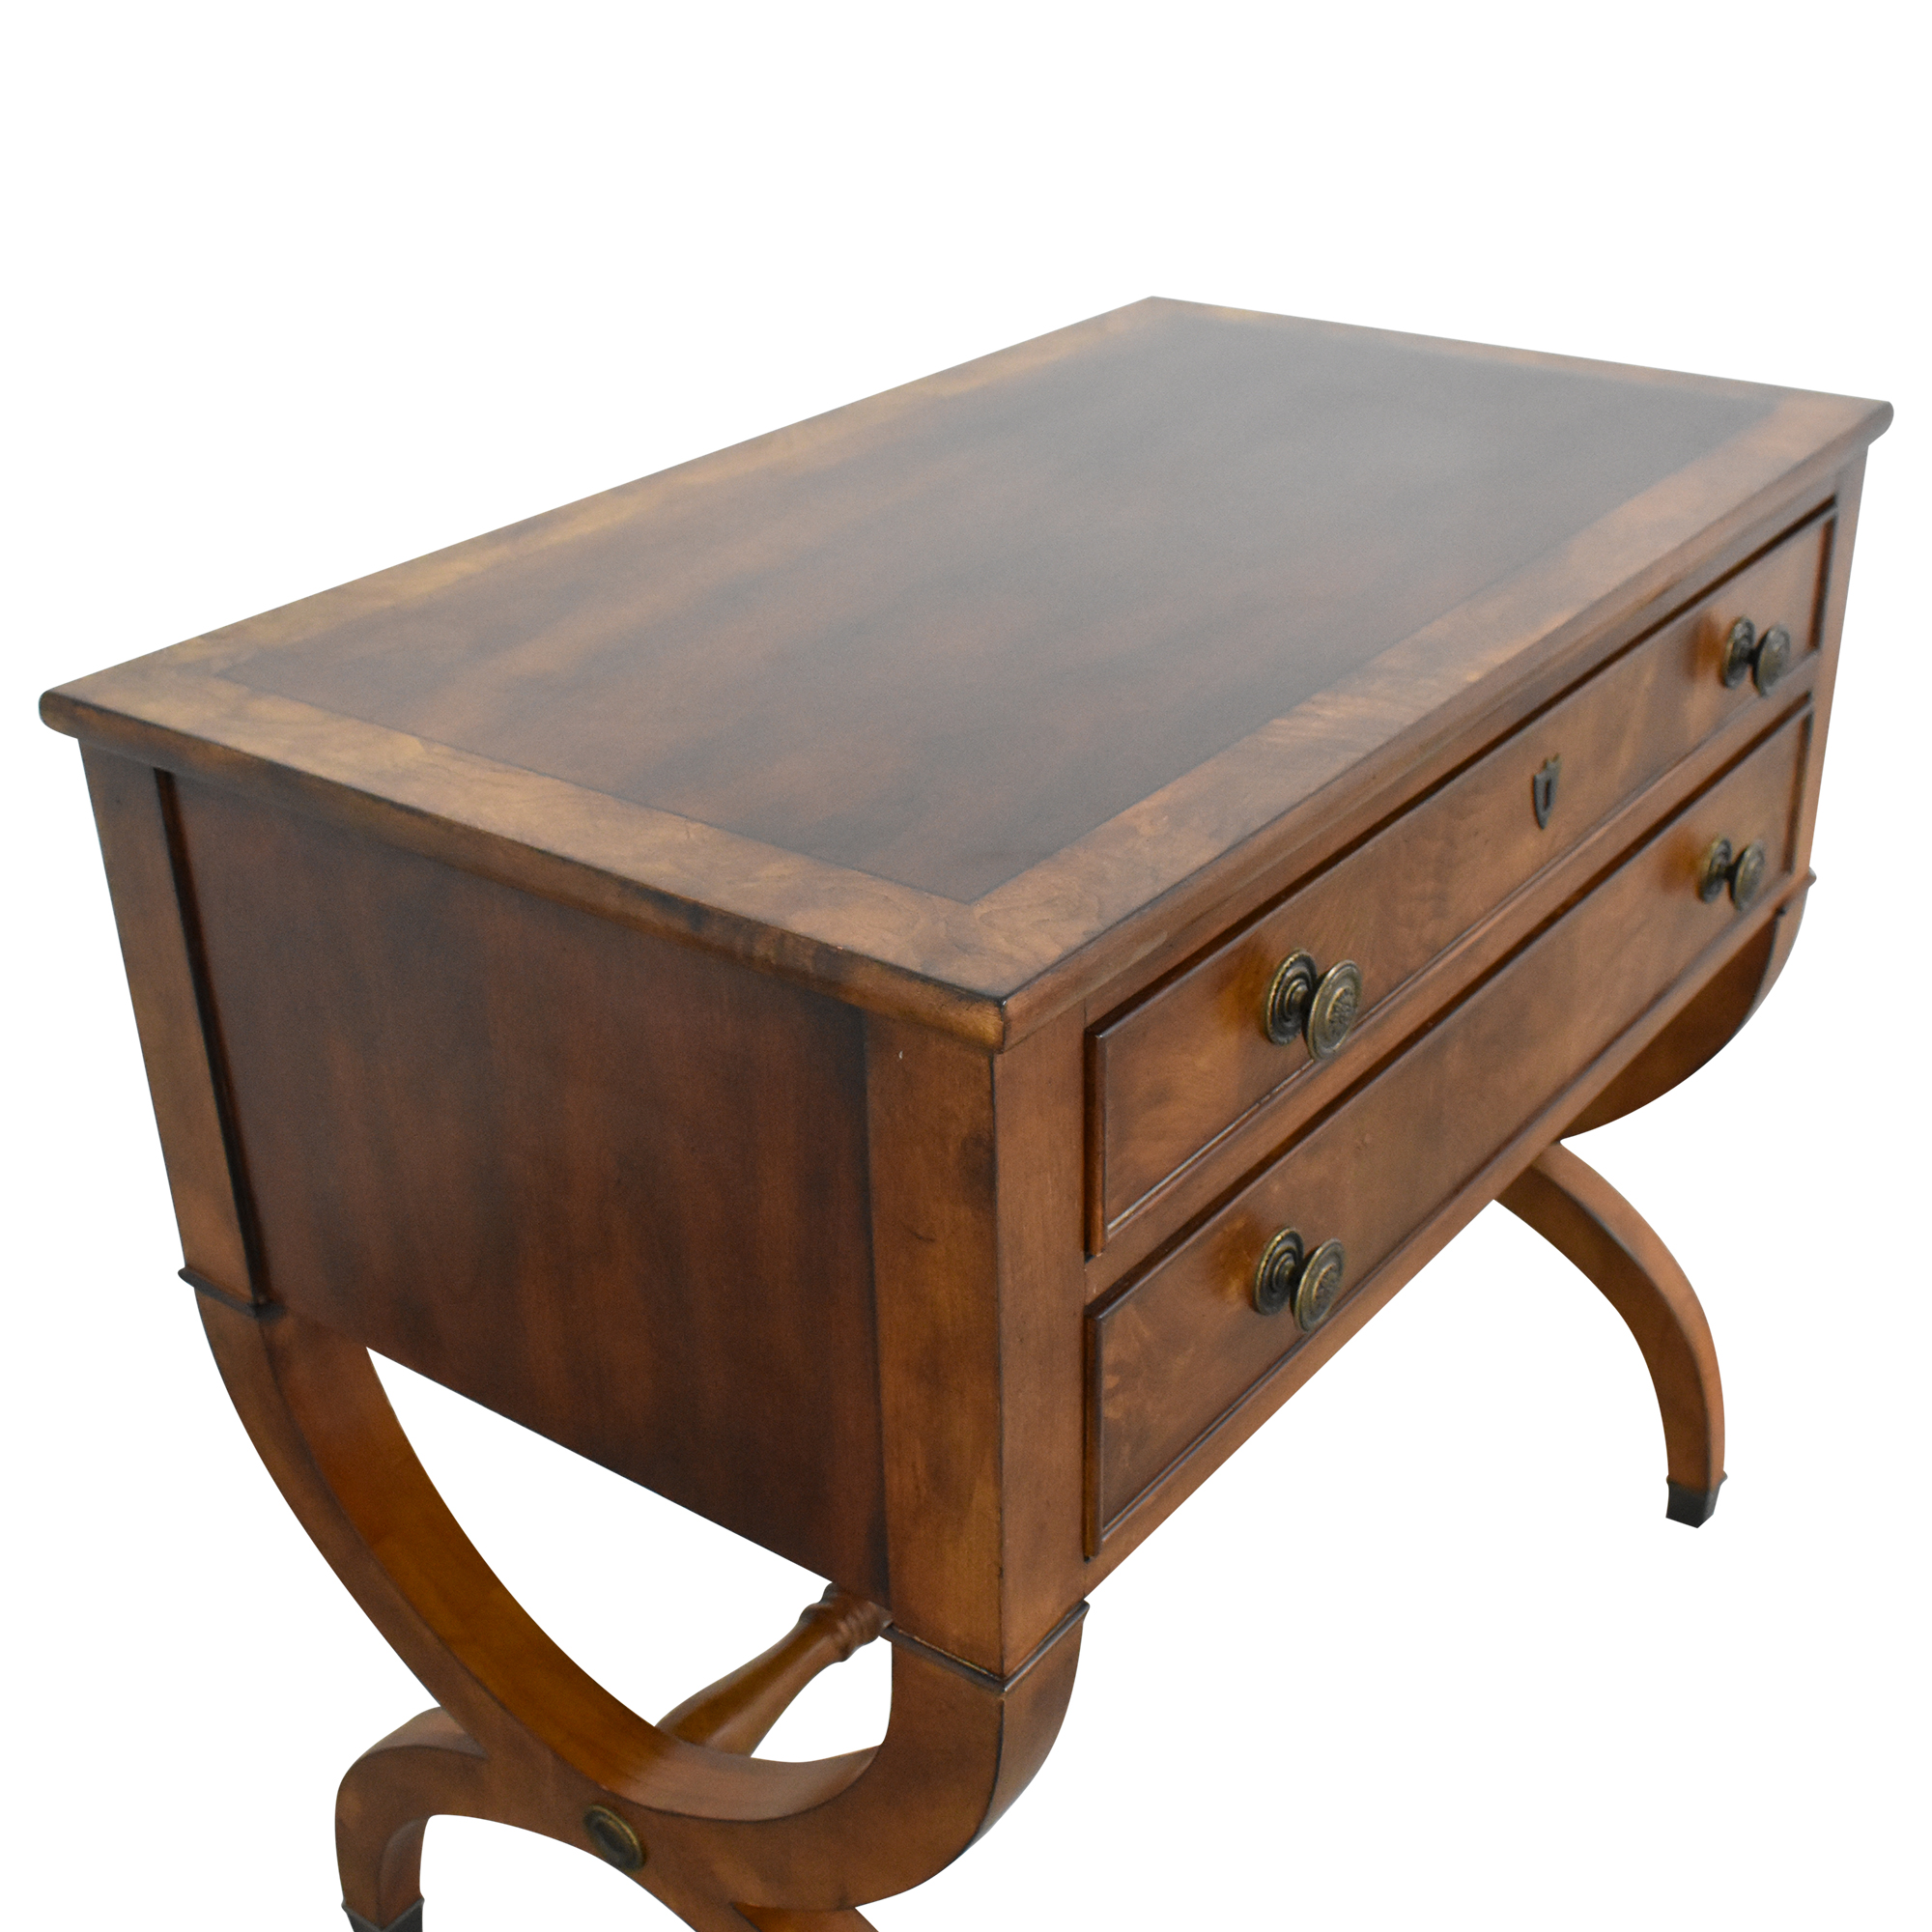 Ethan Allen Ethan Allen Two Drawer Accent Table nj